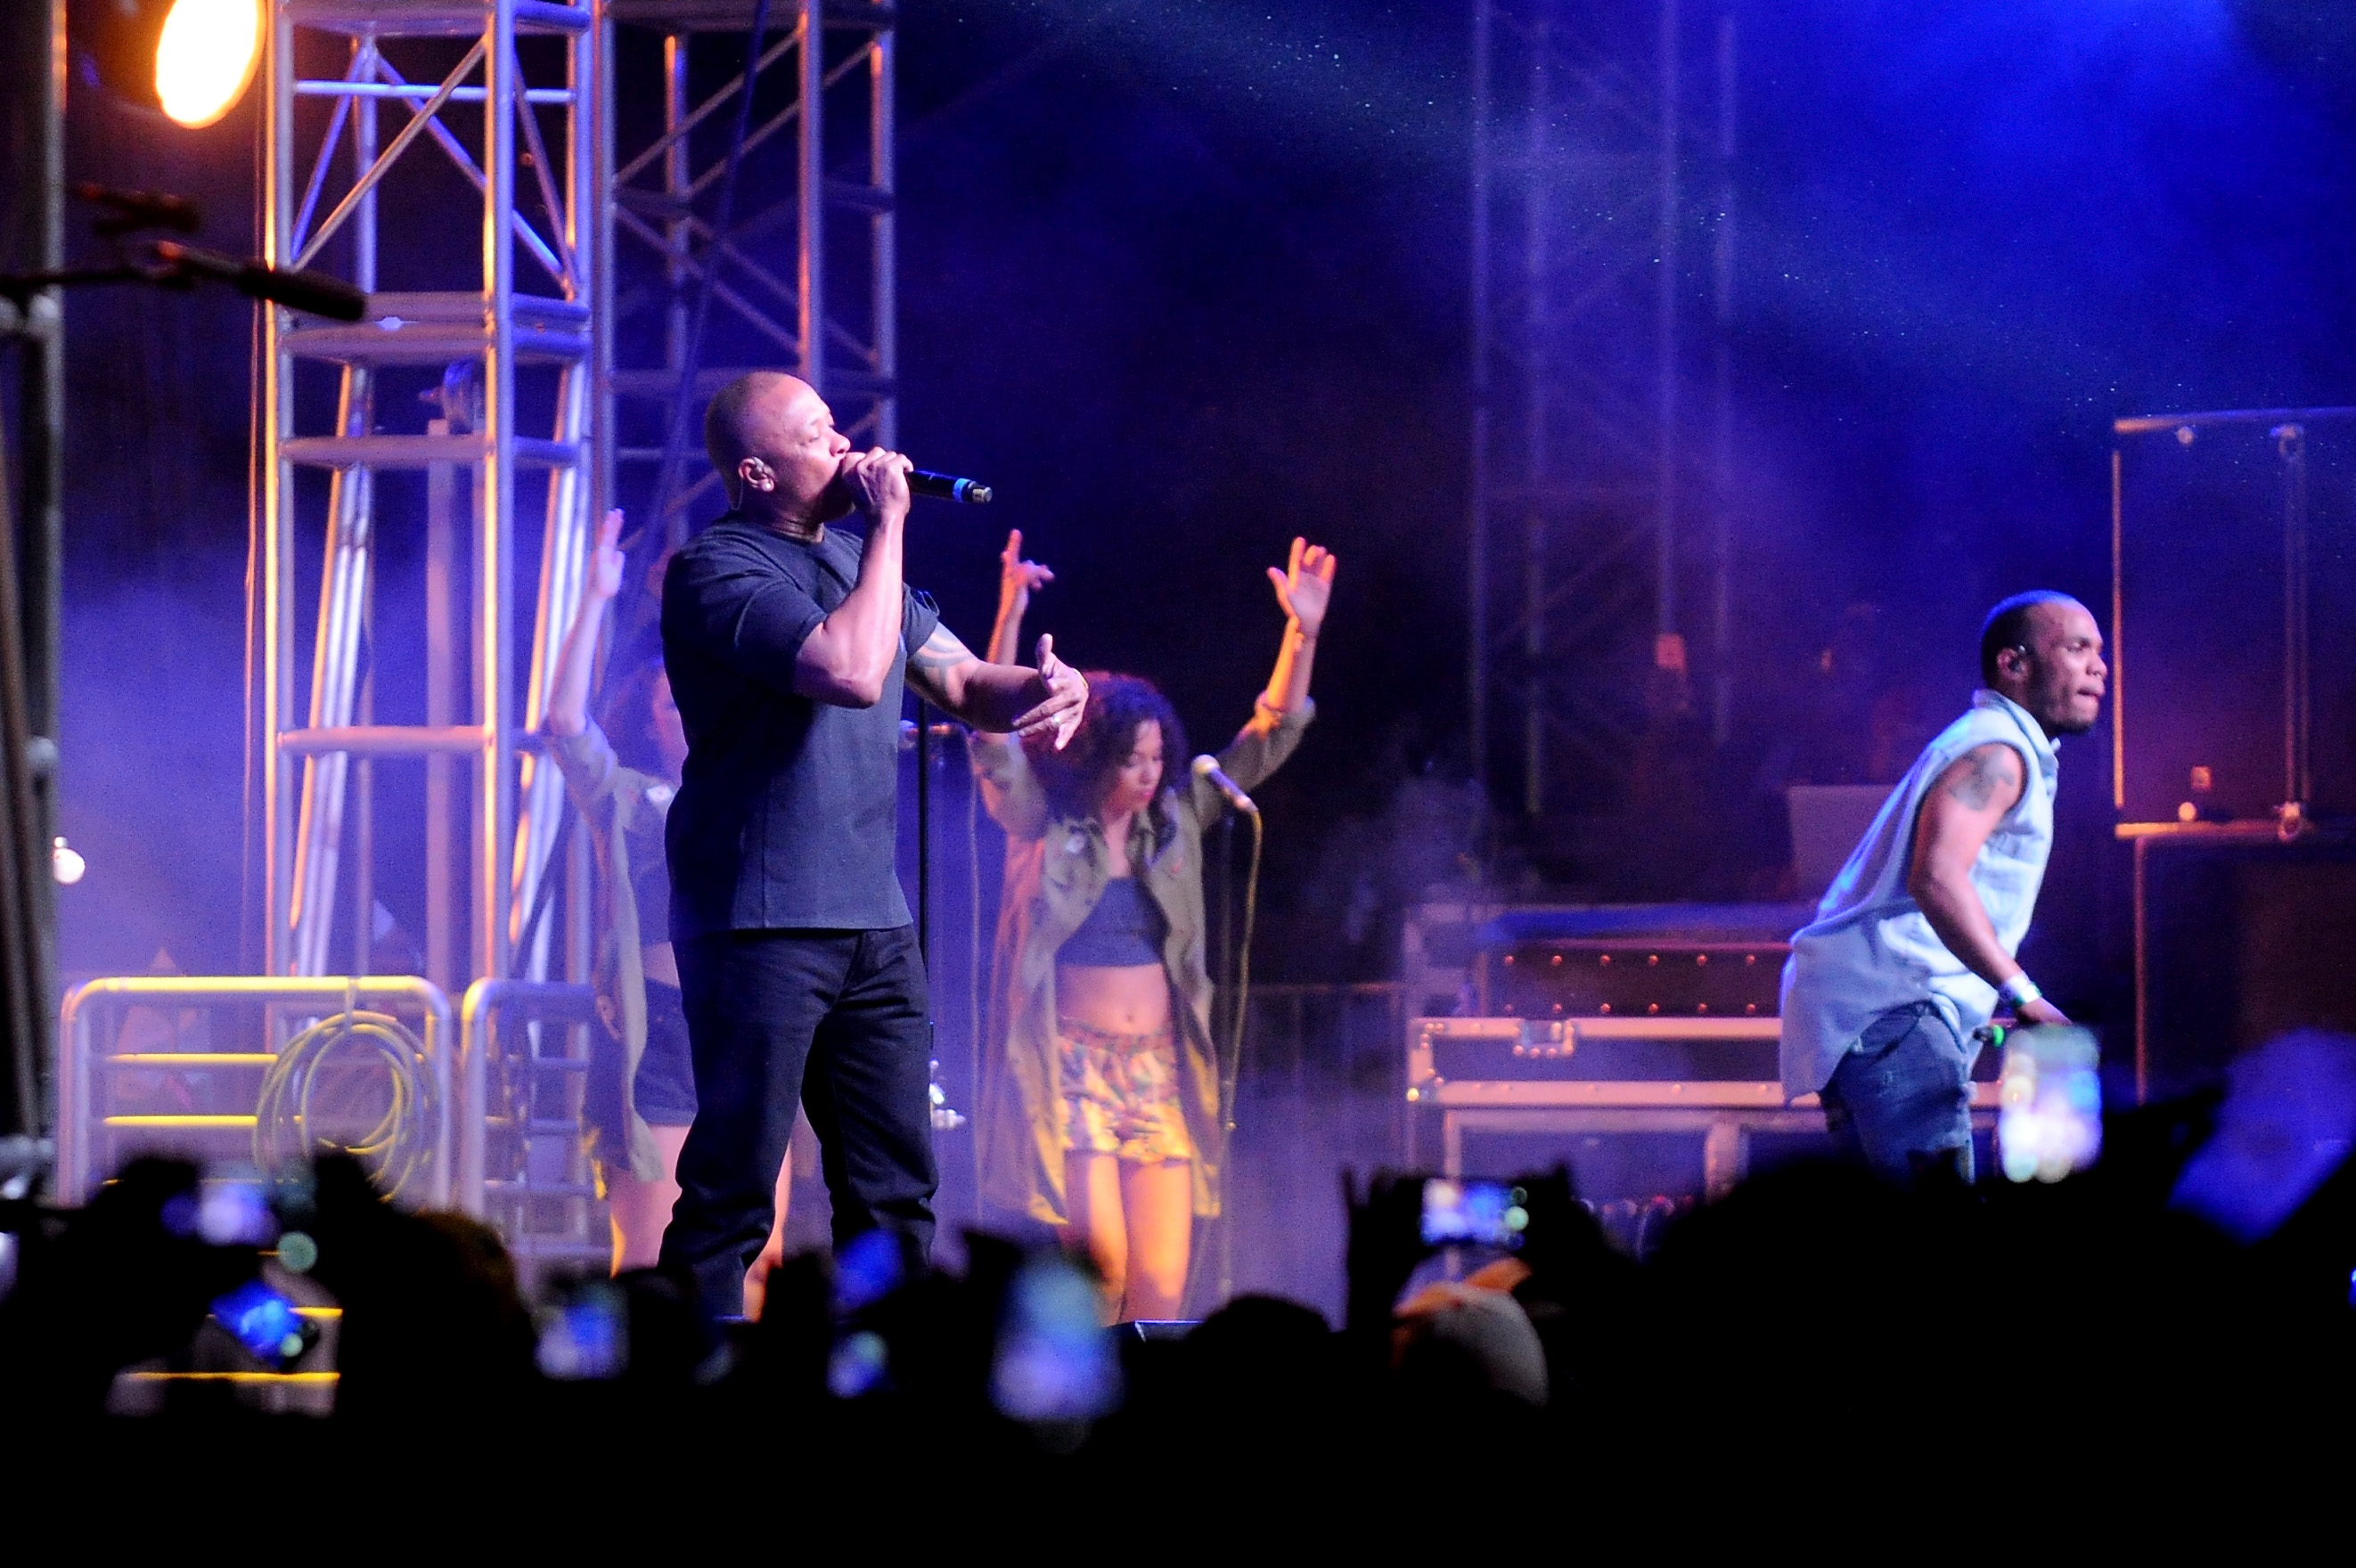 Dr. Dre and Anderson .Paak perform during the Coachella Valley Music & Arts Festival on April 24, 2016 in Indio, California. (Photo by Dave Mangels/Getty)